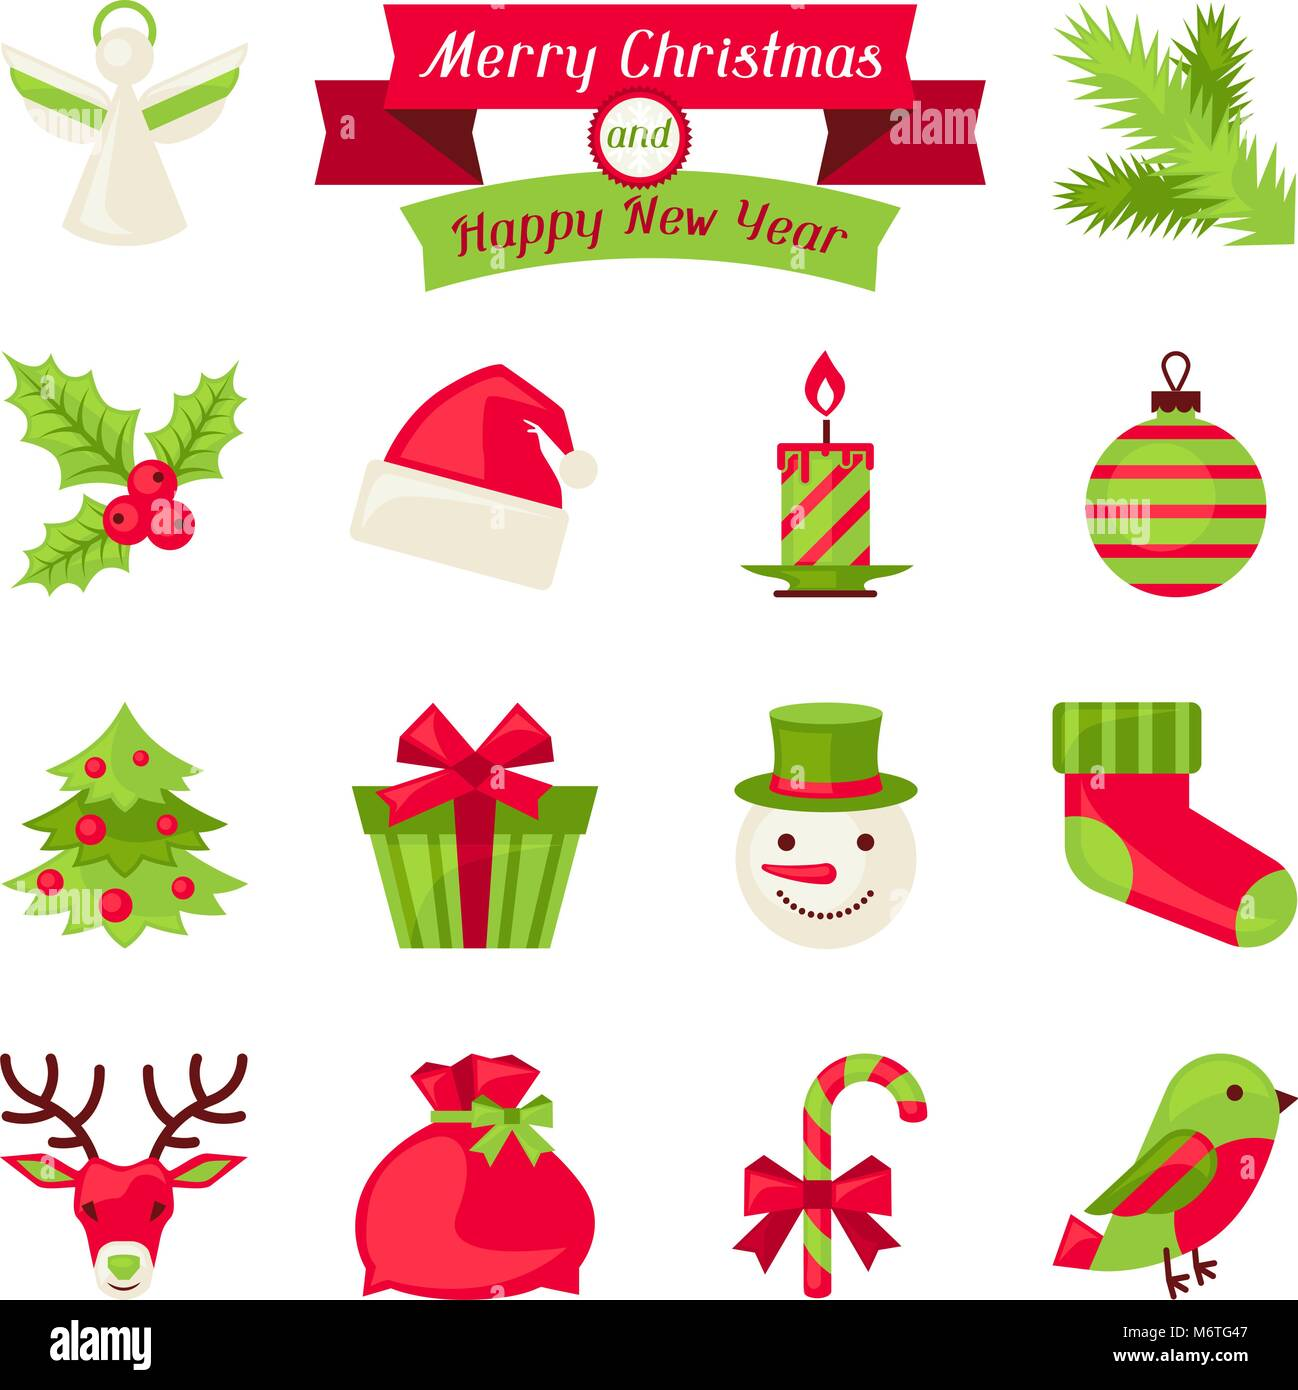 new year icons high resolution stock photography and images alamy https www alamy com stock photo merry christmas and happy new year icons 176331127 html